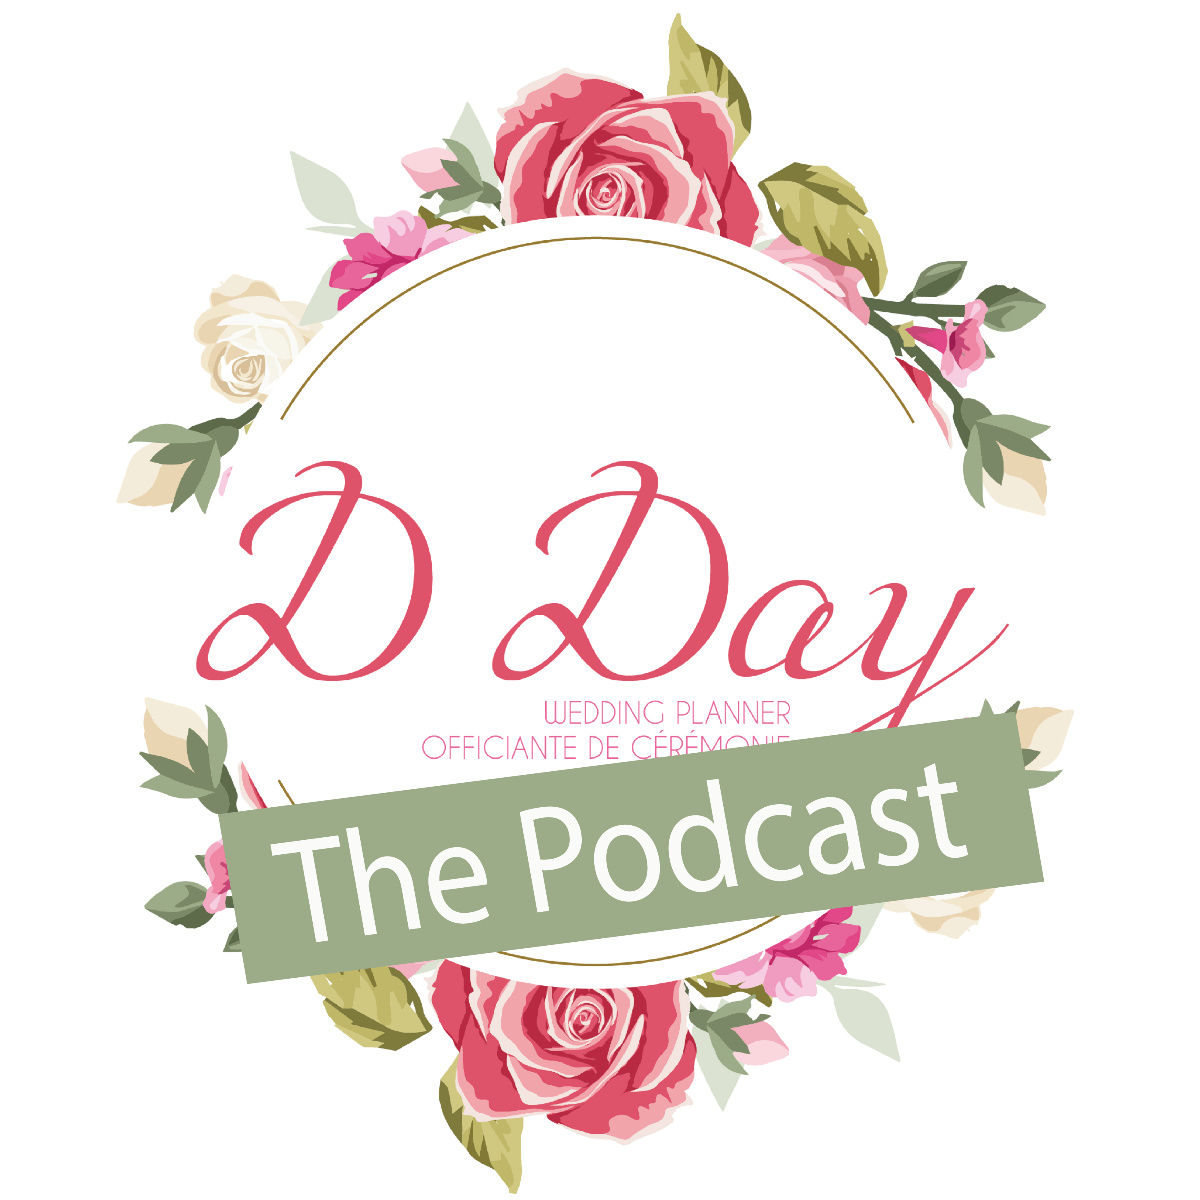 podcast wedding planner dday organisation mariage france suisse europe